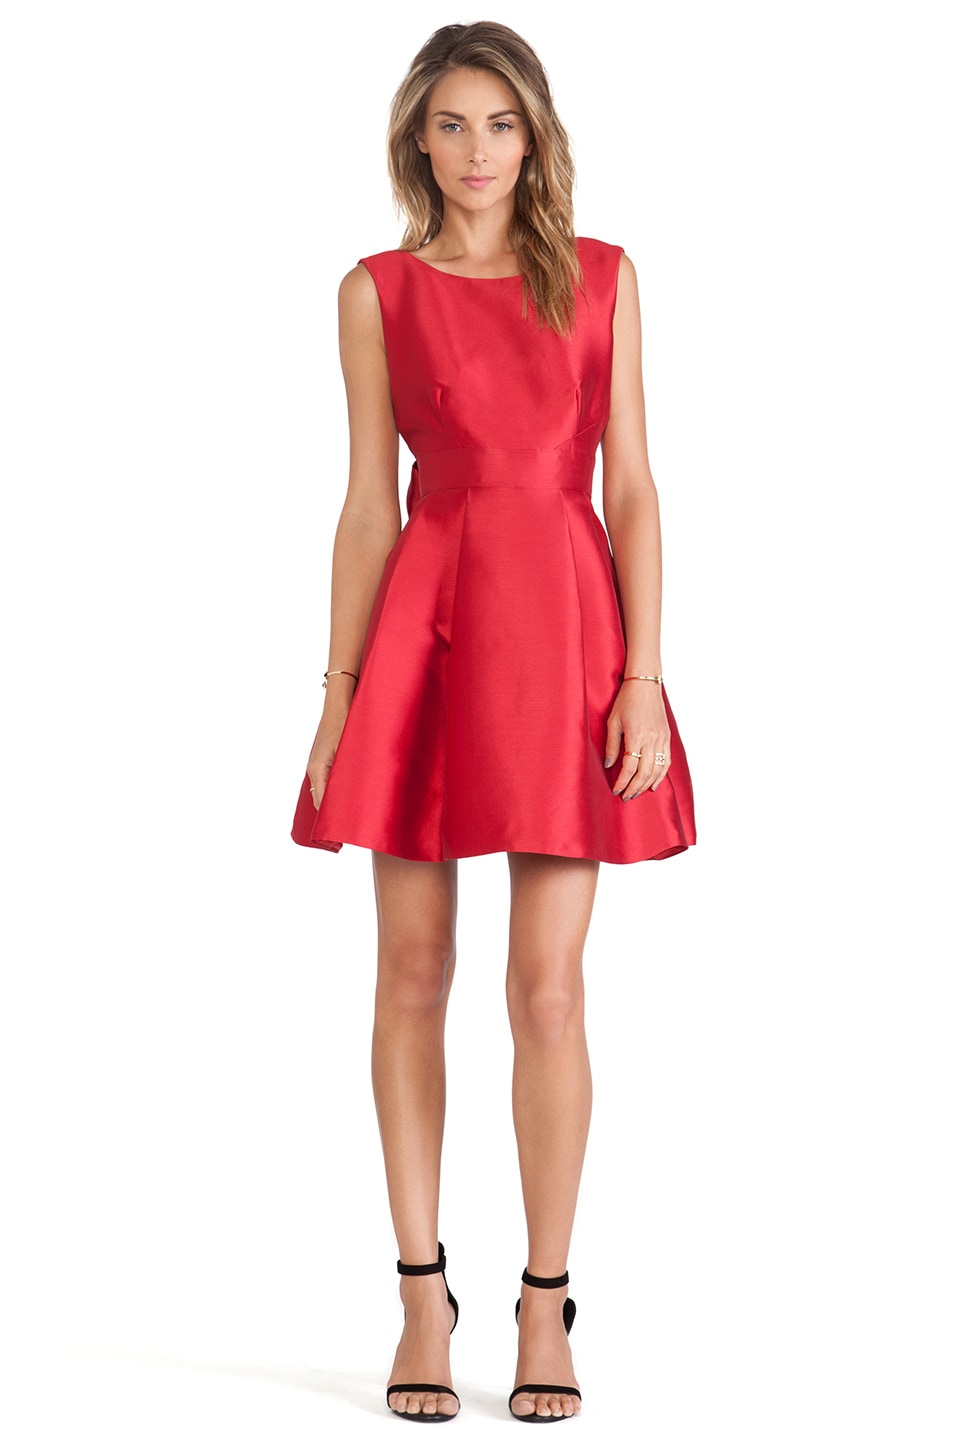 kate spade new york Backless Bow Mini Dress in Red  REVOLVE